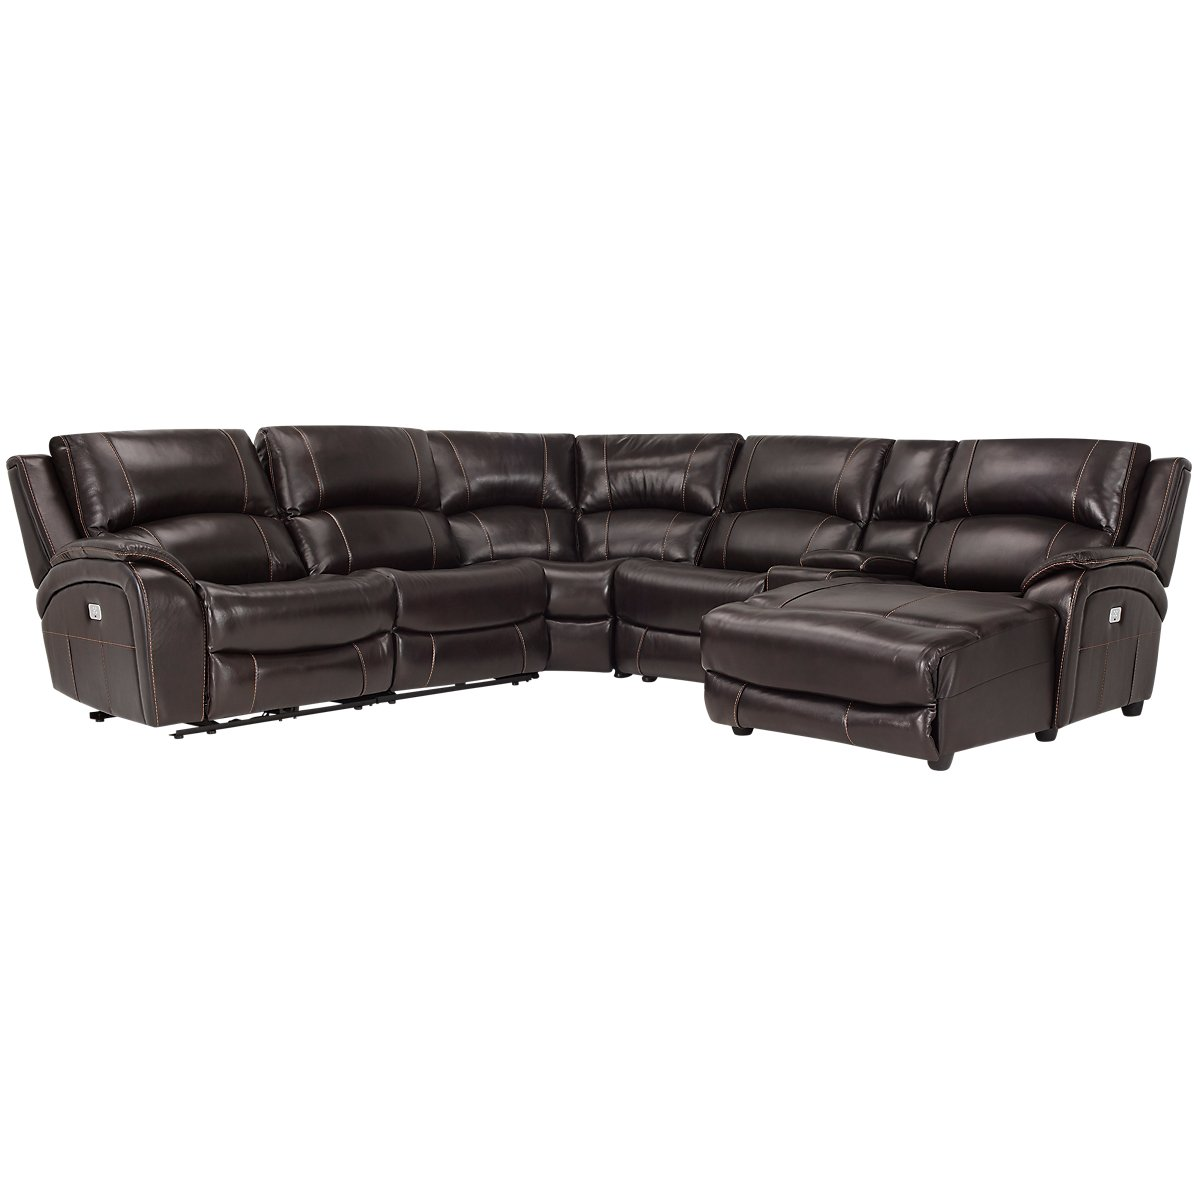 of couch sofa reclining design and elegant picture furniture with chaise set recliners recliner sectional best